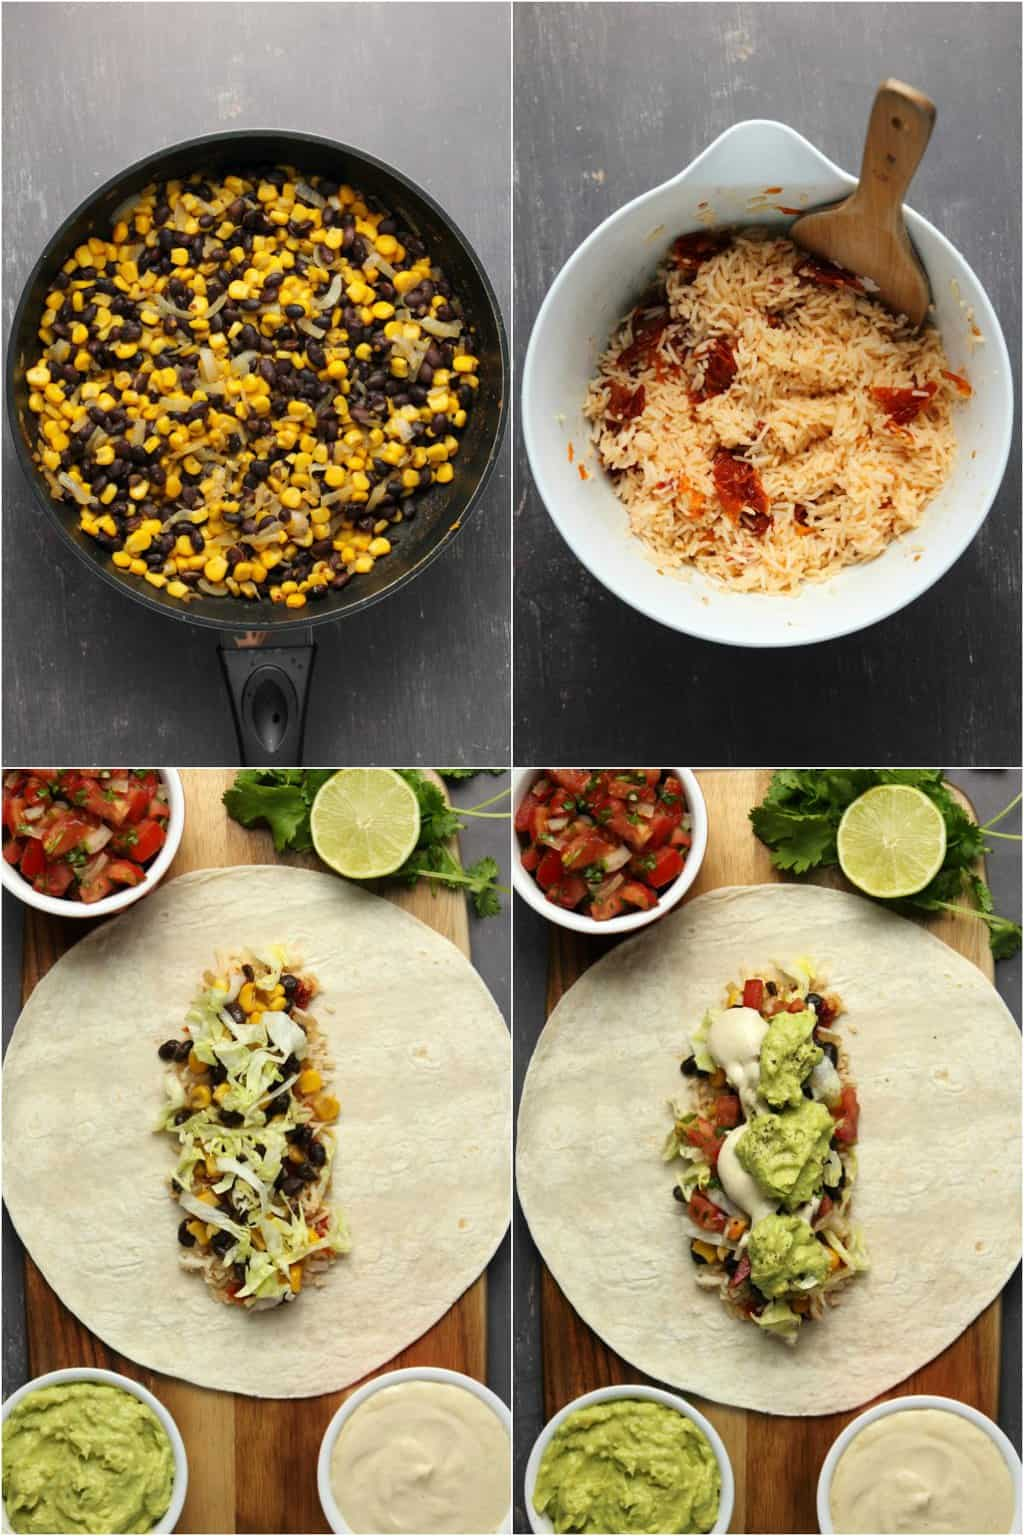 Step by step process photo collage of making vegan burritos.